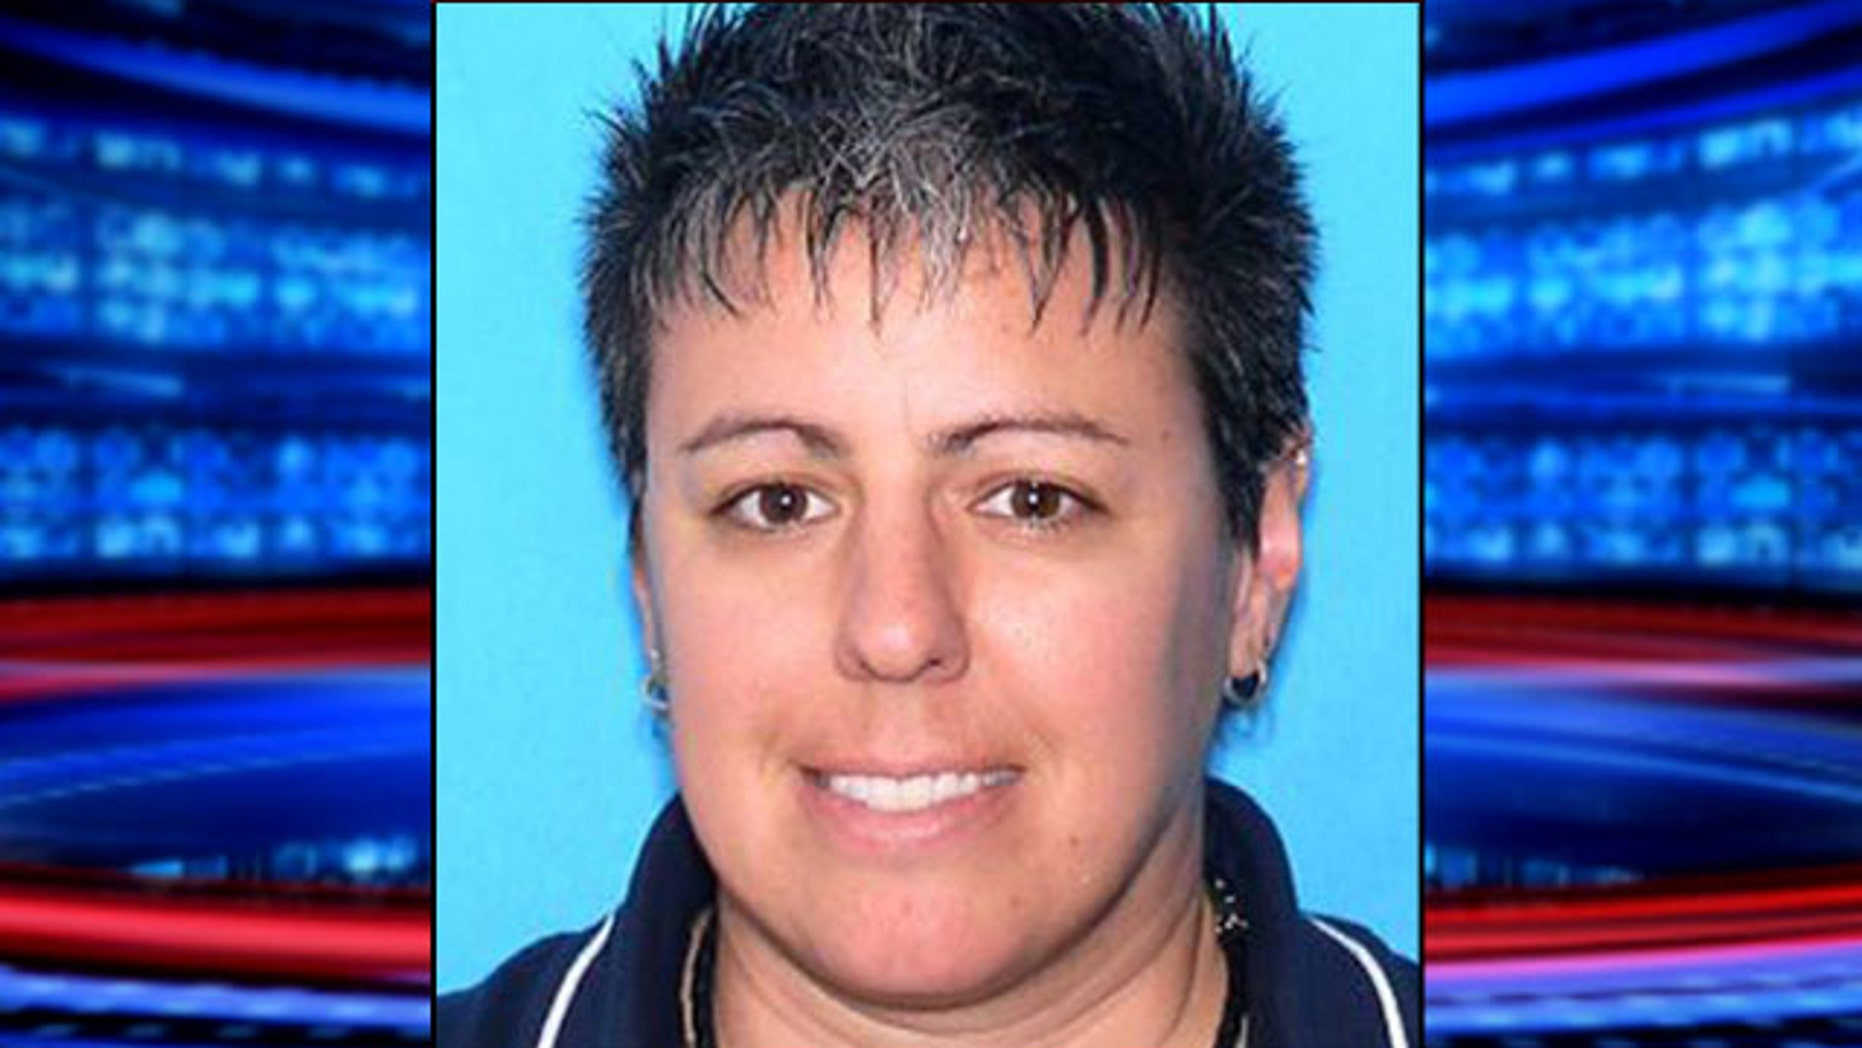 This undated photo, provided by Fox affiliate WTVT-TV, shows 38-year-old Kelly Moriarty.